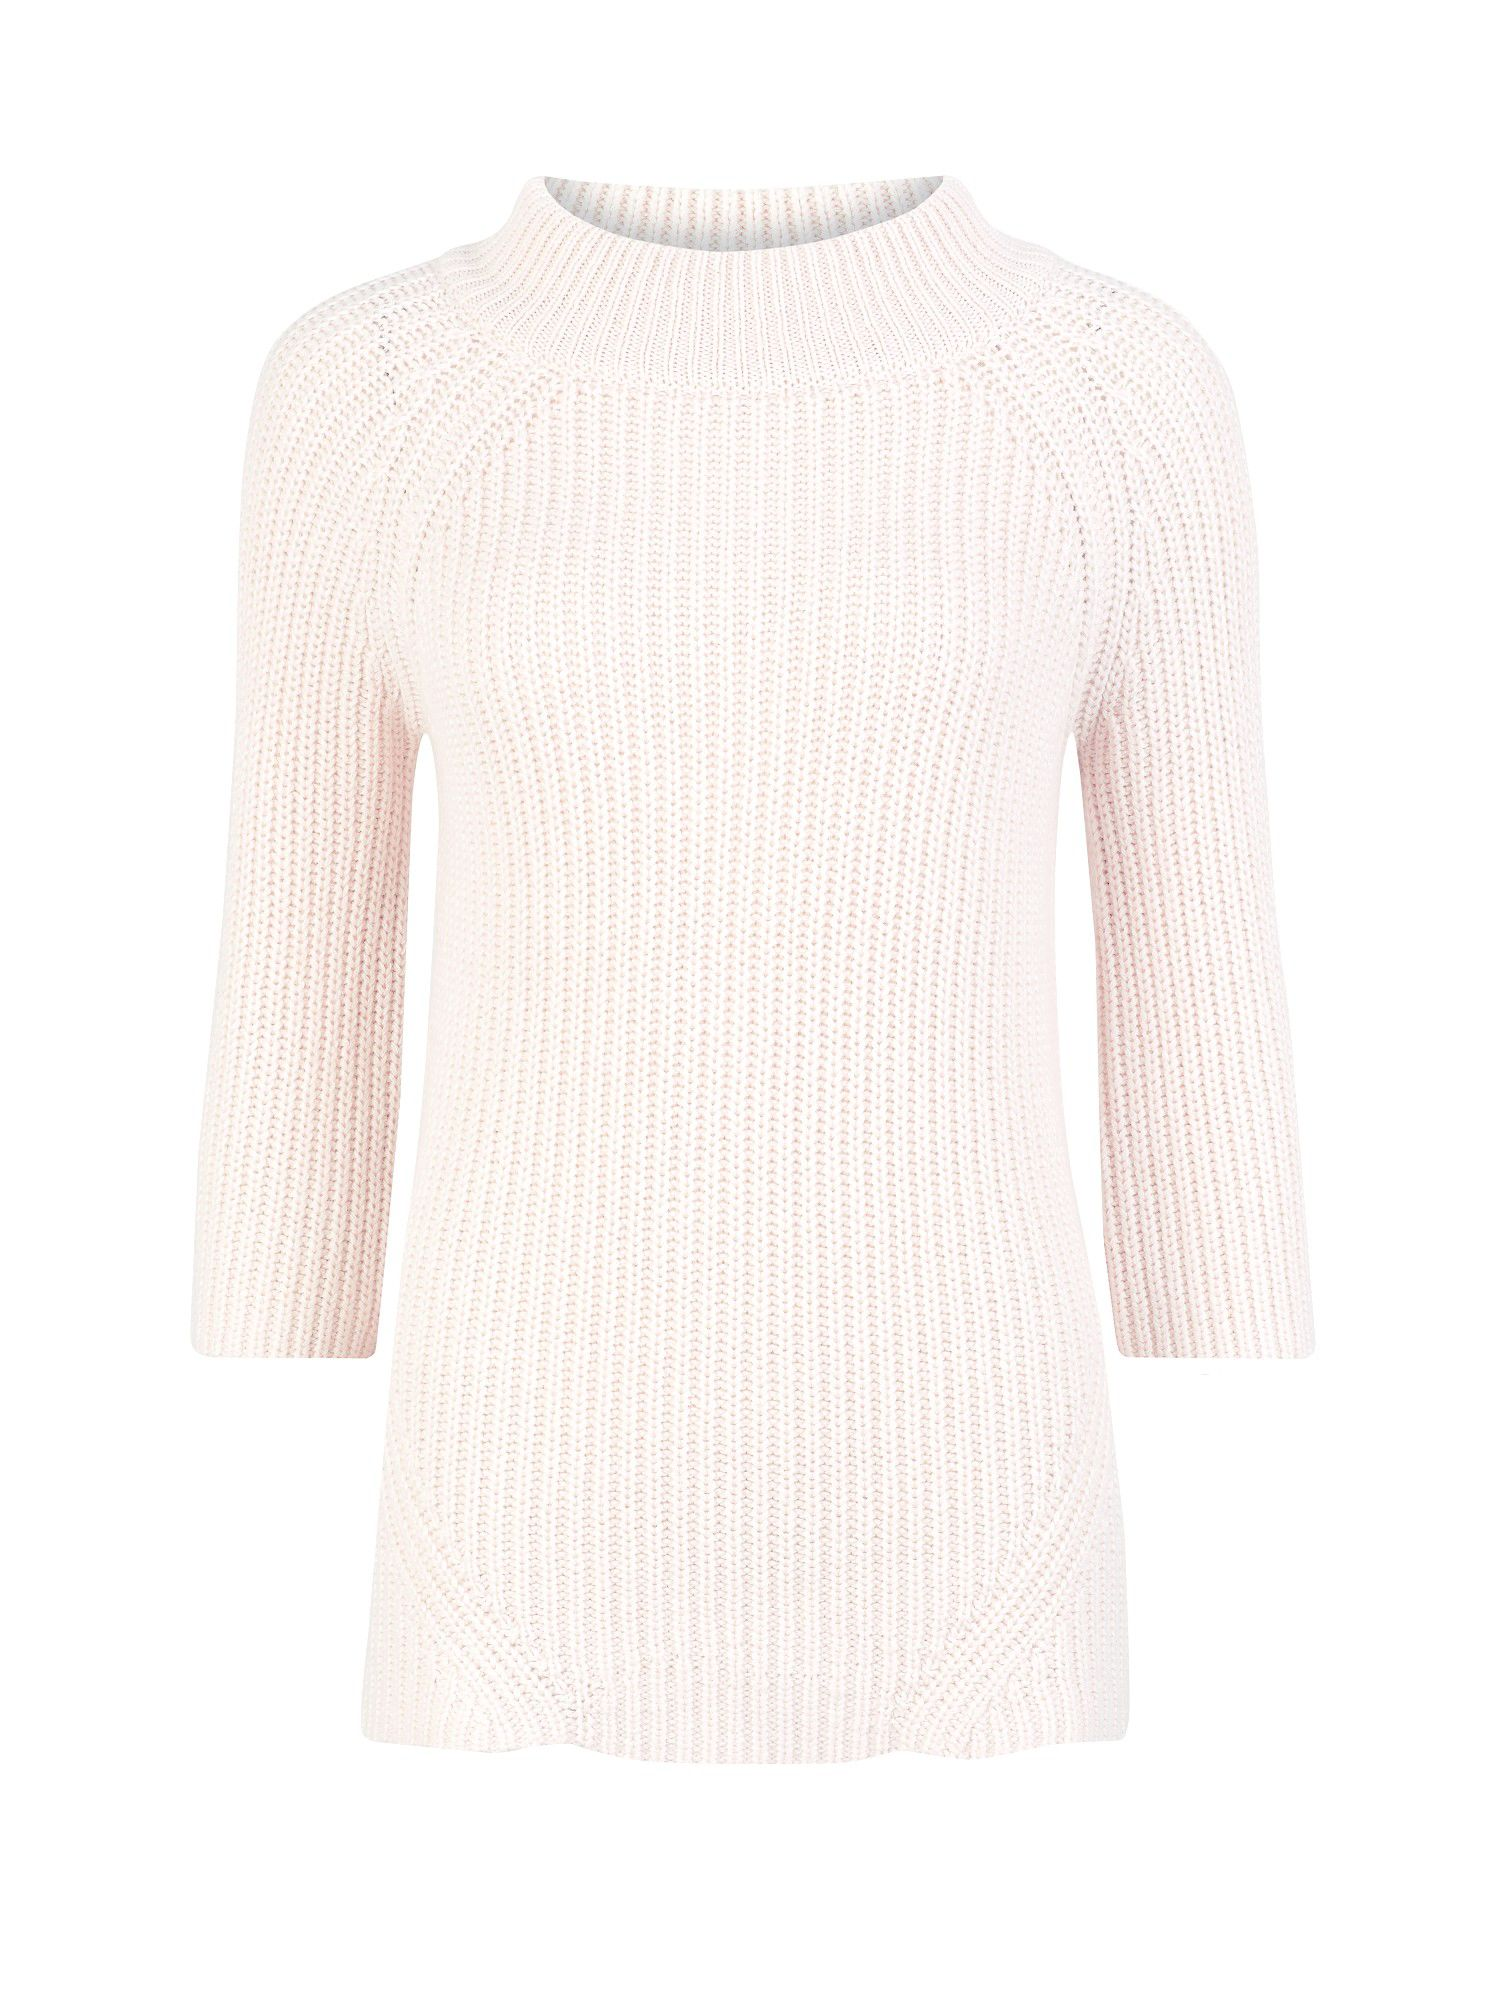 Boat neck swing jumper